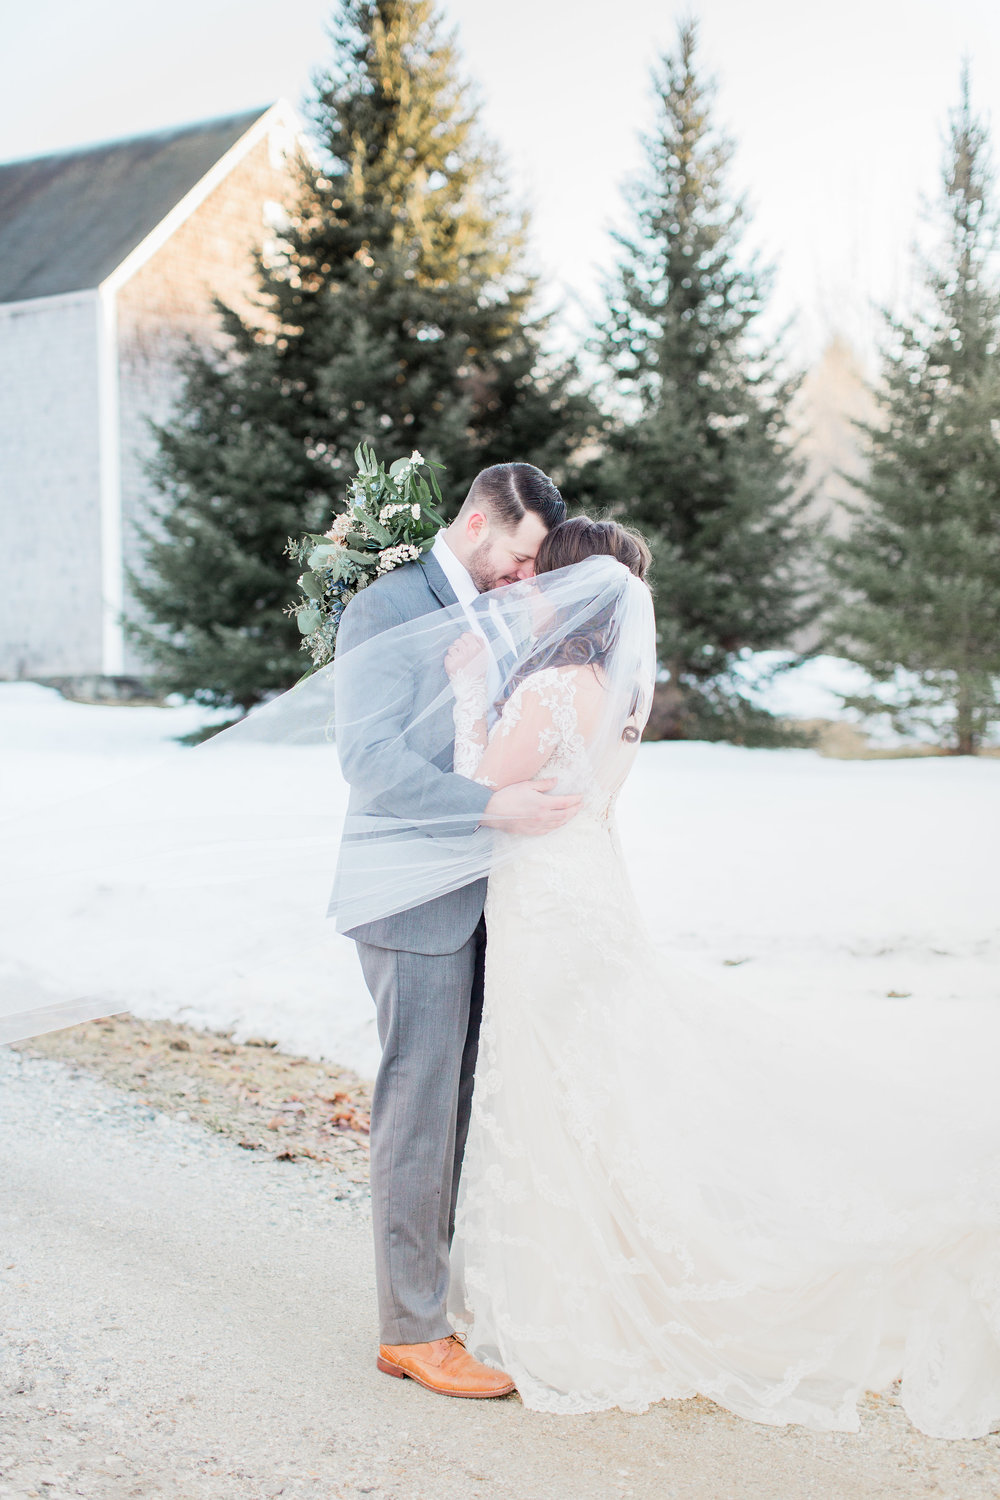 Cunningham_Farm_Winter_Styled_Wedding_Shoot_Meredith_Jane_Photography-218.jpg